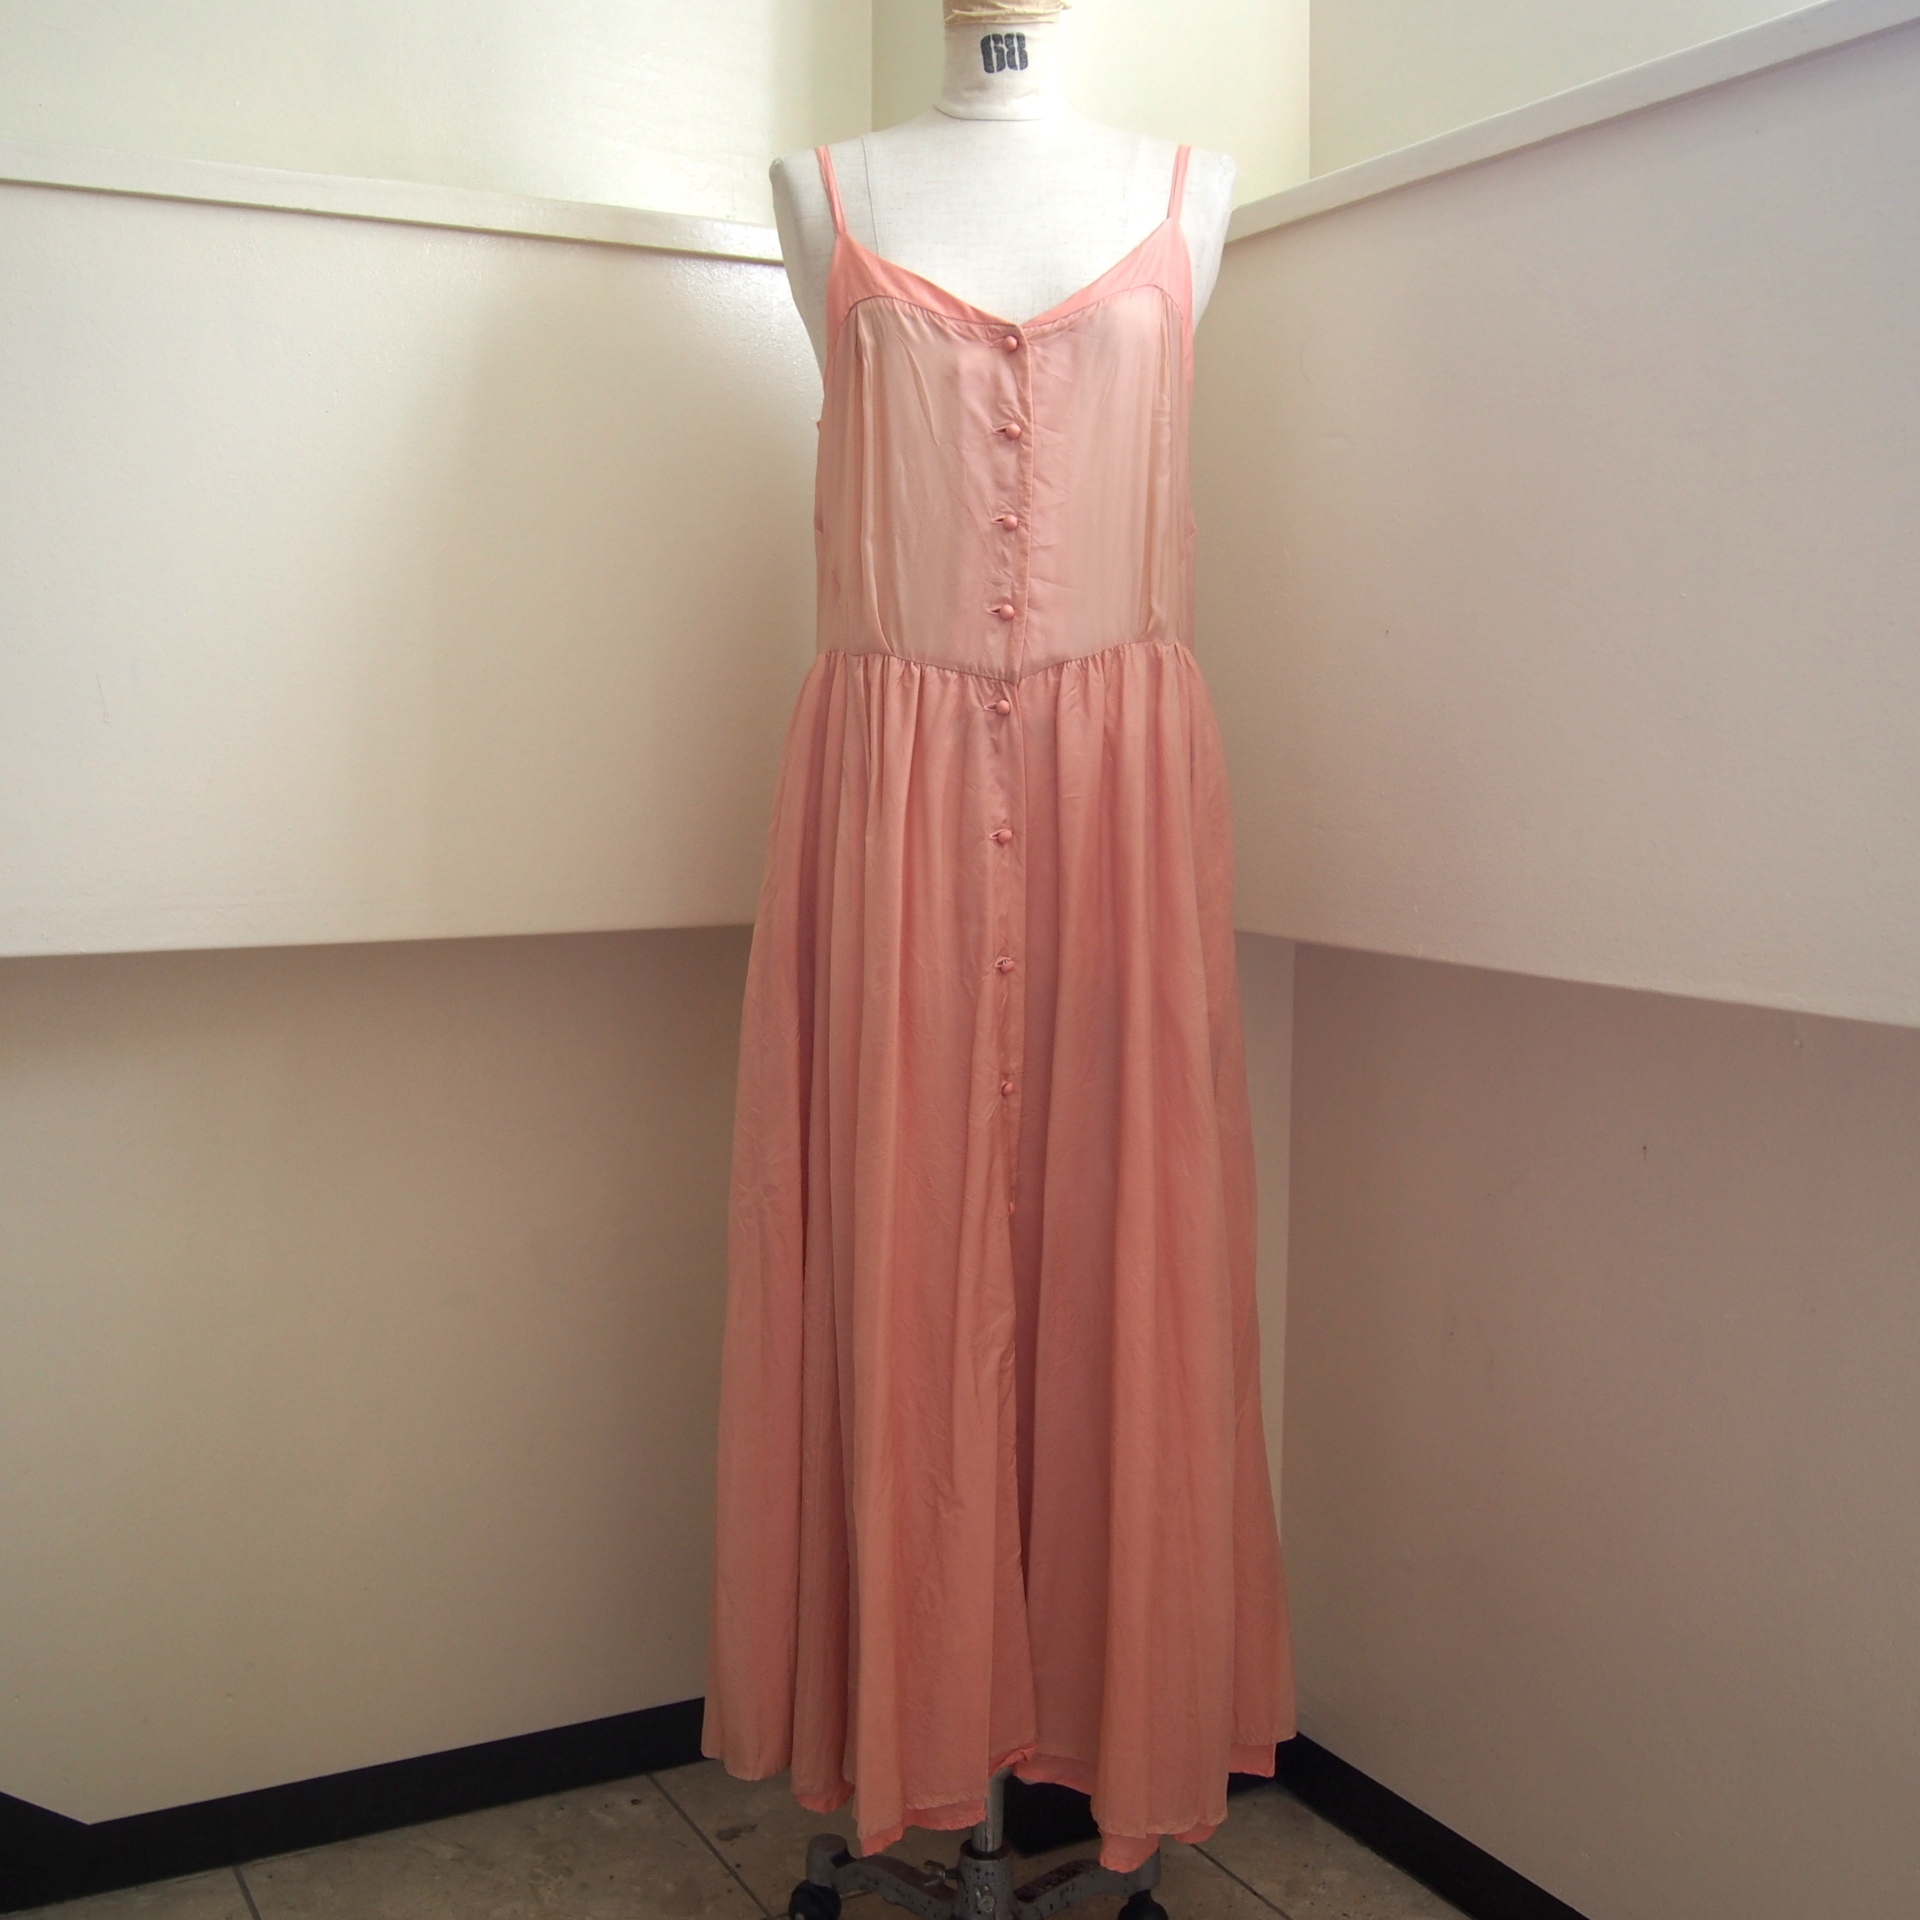 【hippiness】cupro corset dress(light.pink×pink)/ 【ヒッピネス】キュプラ コルセット ドレス(ライトピンク×ピンク)